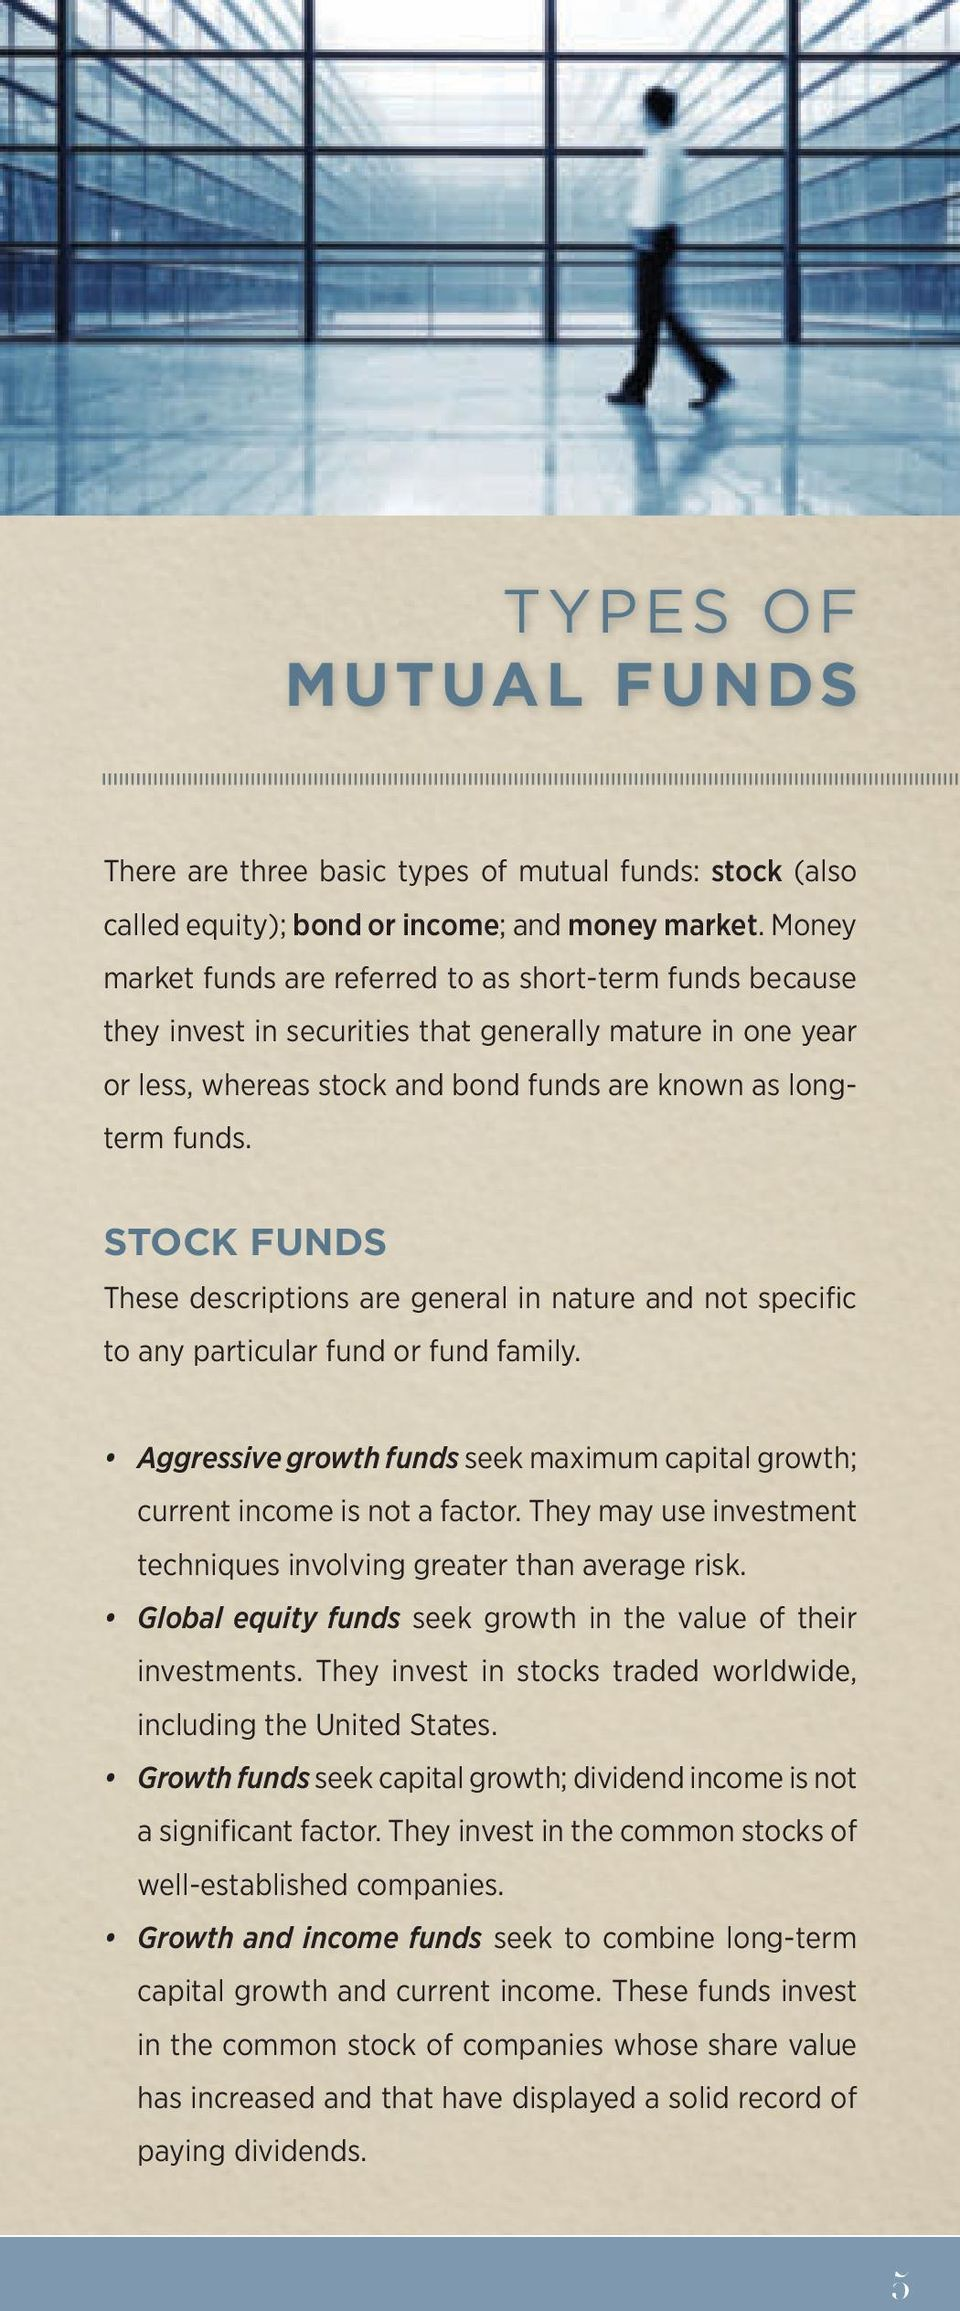 STOCK FUNDS These descriptions are general in nature and not specific to any particular fund or fund family. Aggressive growth funds seek maximum capital growth; current income is not a factor.